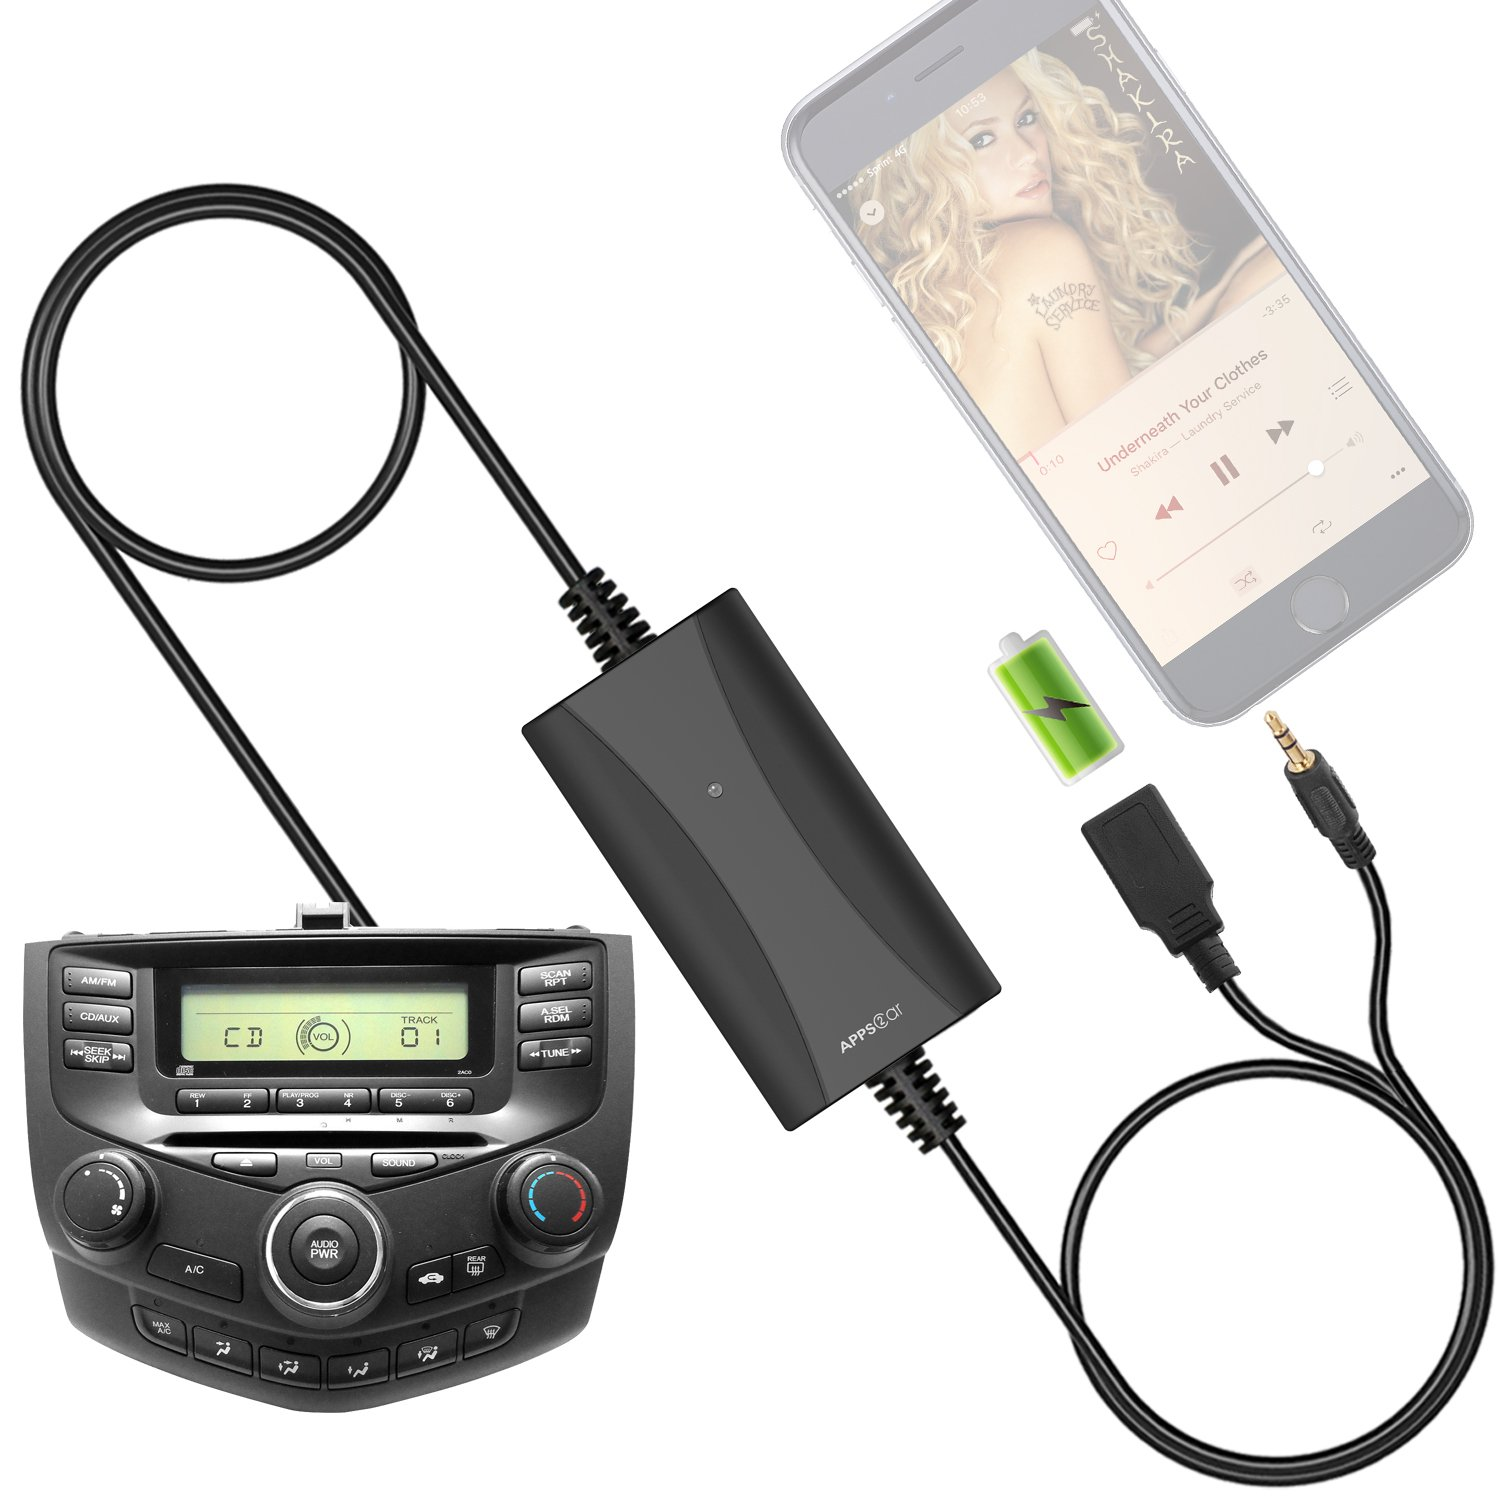 [New Generation] Car Stereo AUX Input Adapter, Honda Auxiliary Cable Cord USB Charger for Select Honda Civic CRV Accord Odyssey Pilot Fit Jazz Element Ridgeline S2000, Acura MDX RDX CSX ILX TSX TL RL